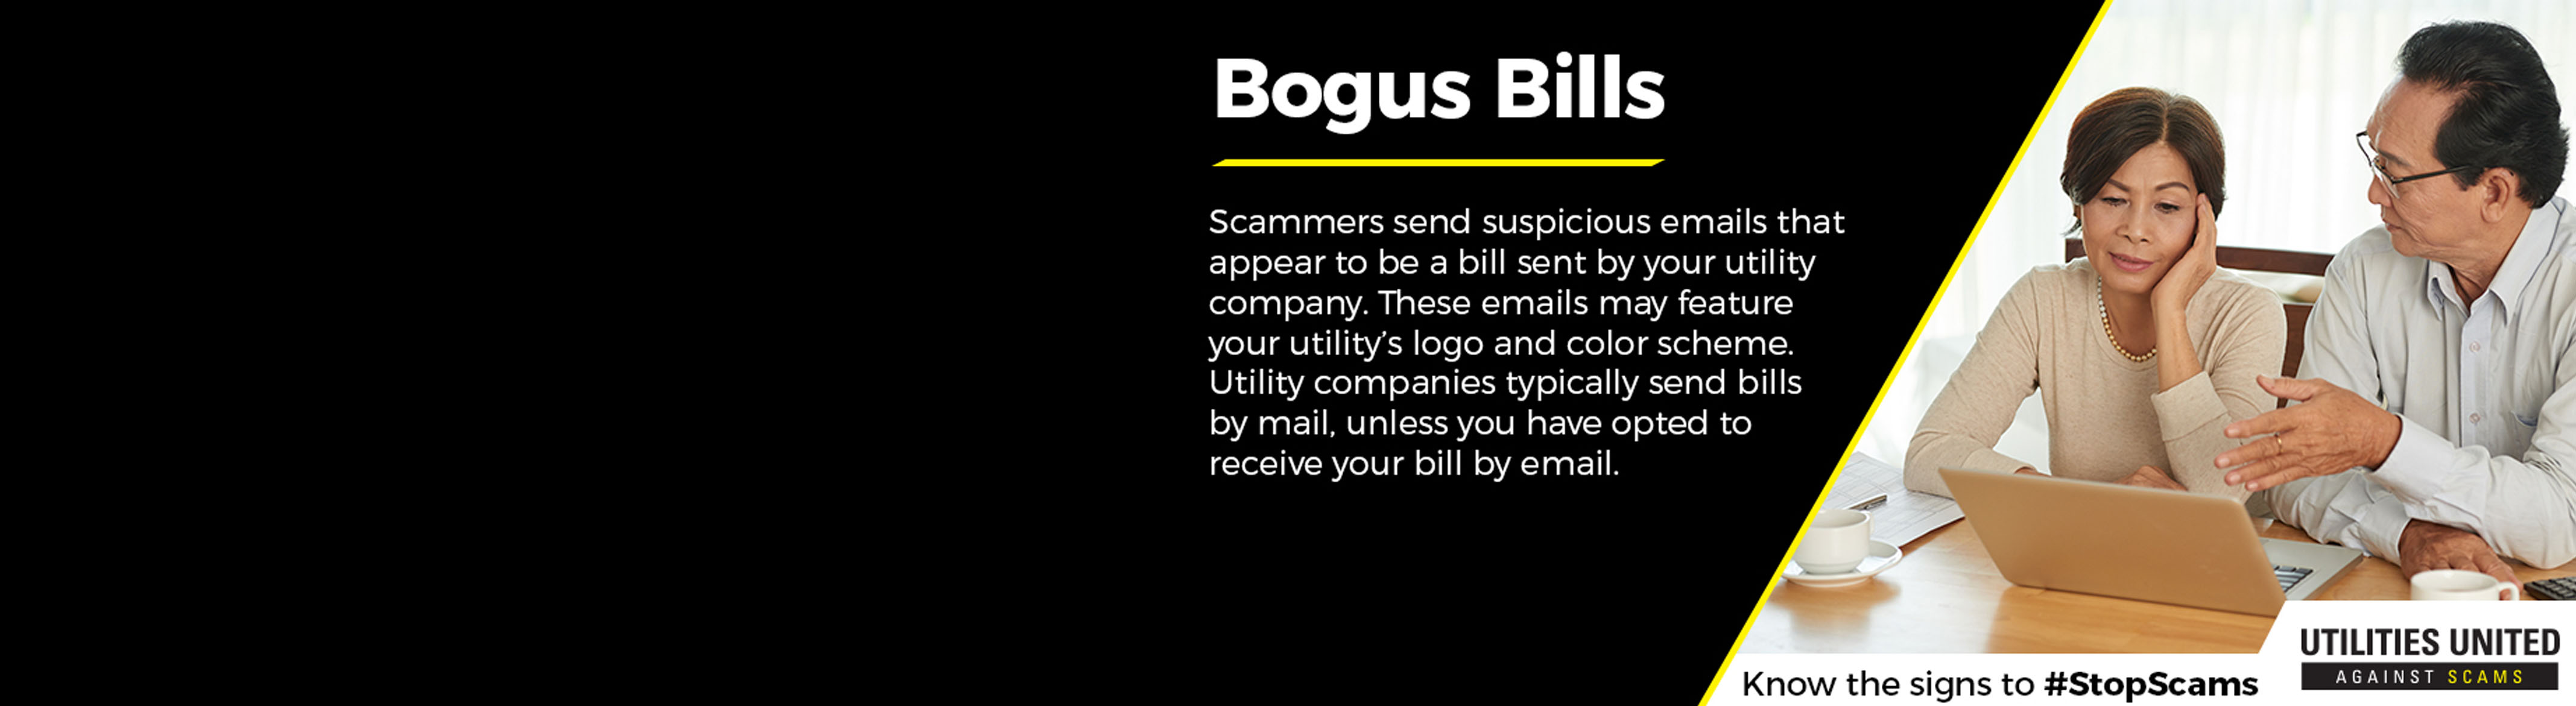 Scammers send suspicious emails that appear to be a bill sent by your utility company.